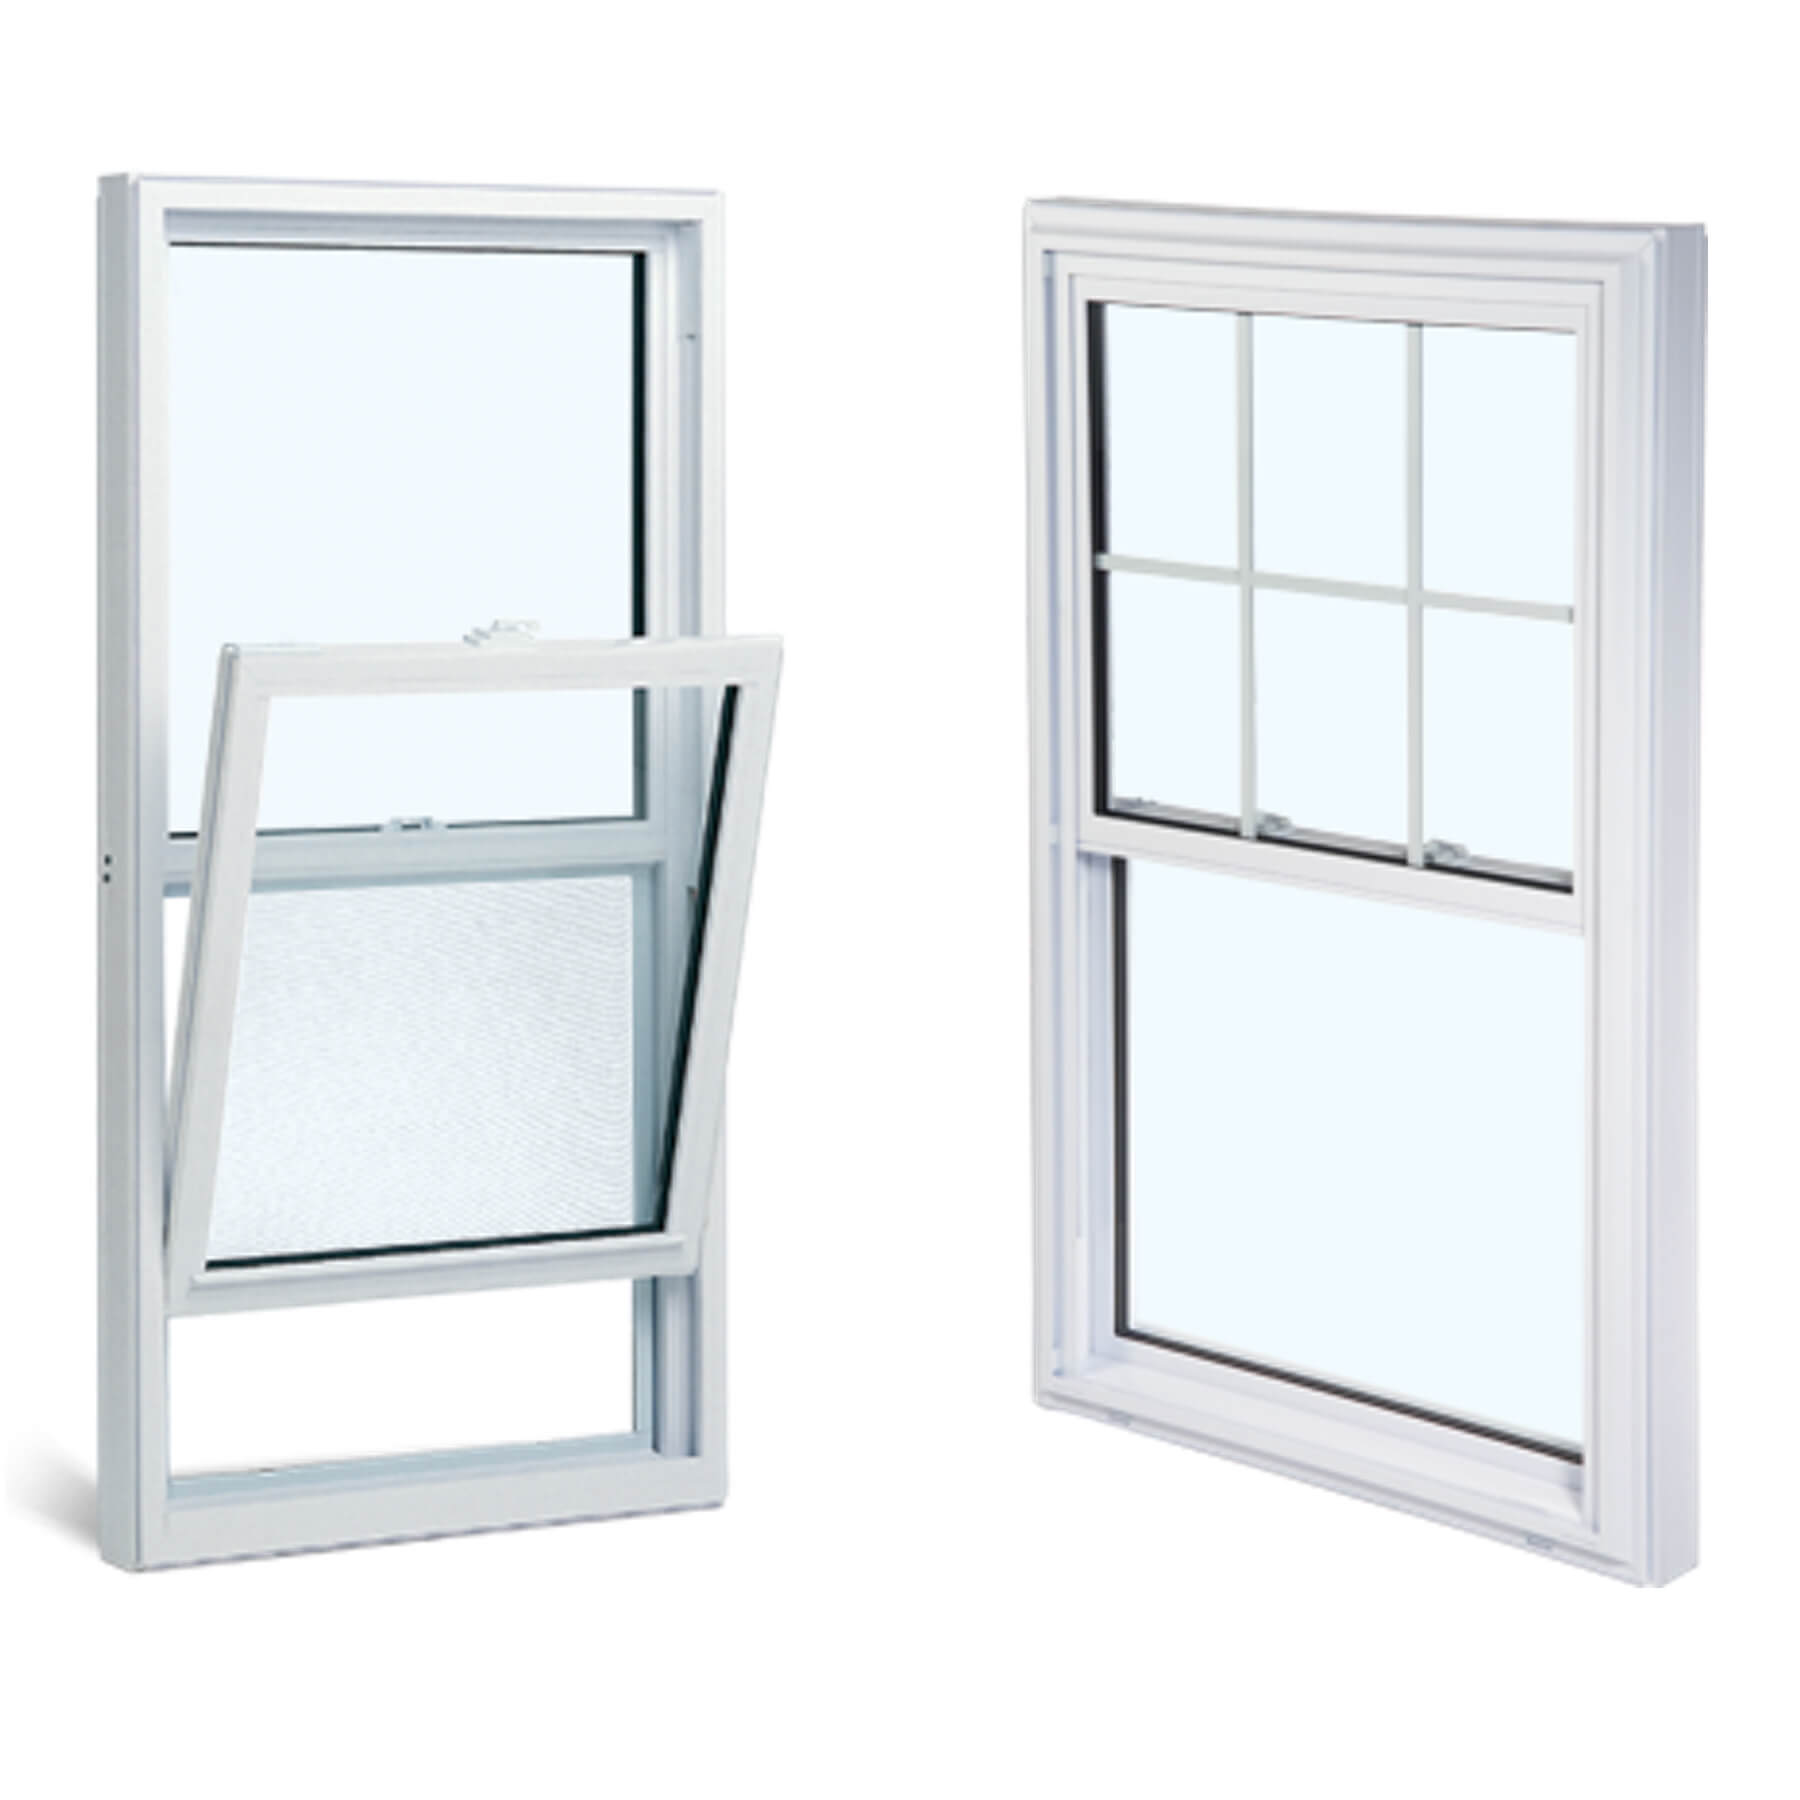 Single Hung Windows Autocad : Replacement windows and vinyl all